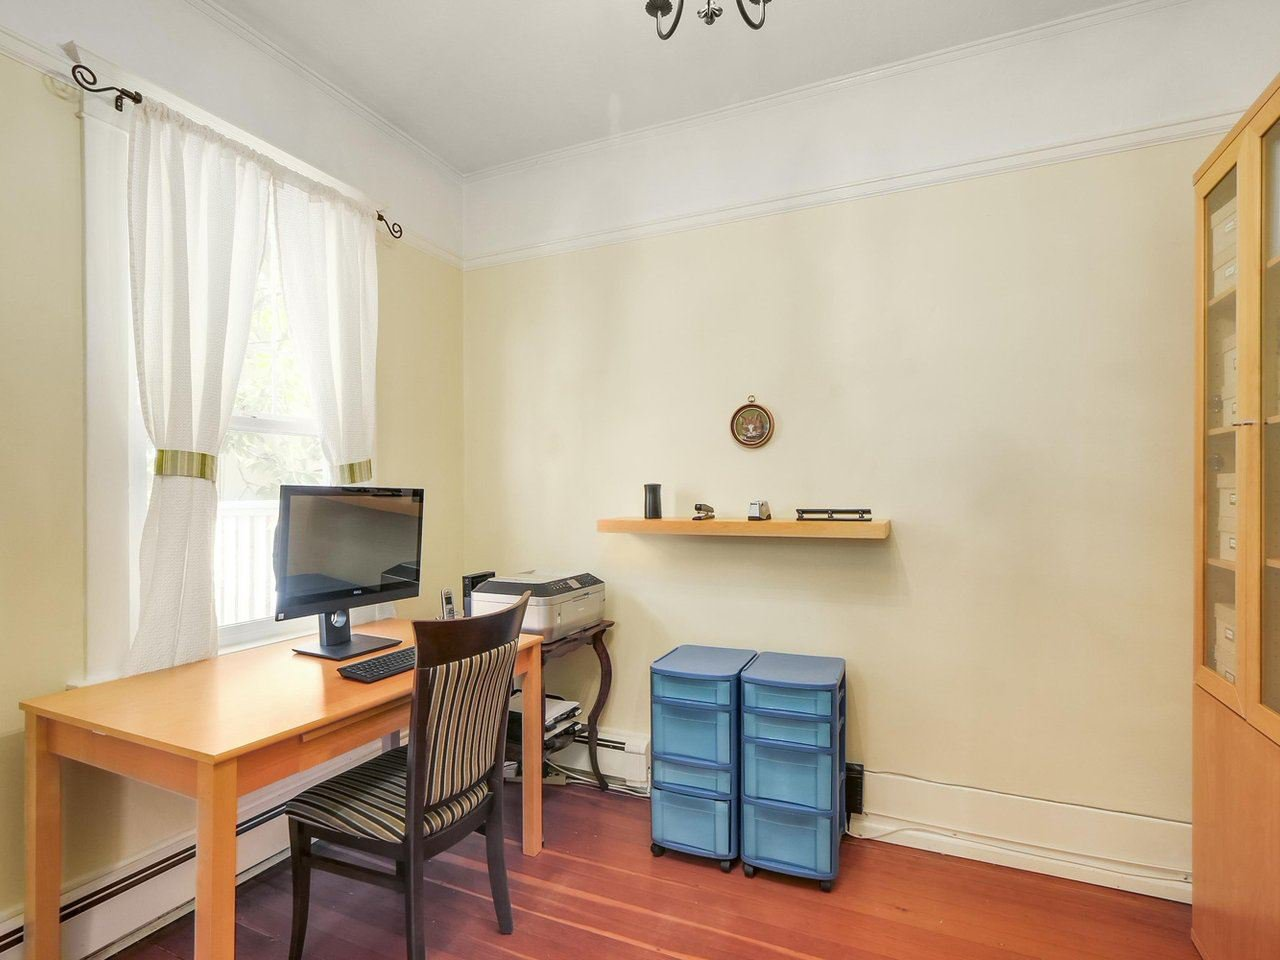 Photo 10: Photos: 1761 E 13TH AVENUE in Vancouver: Grandview VE House for sale (Vancouver East)  : MLS®# R2202018